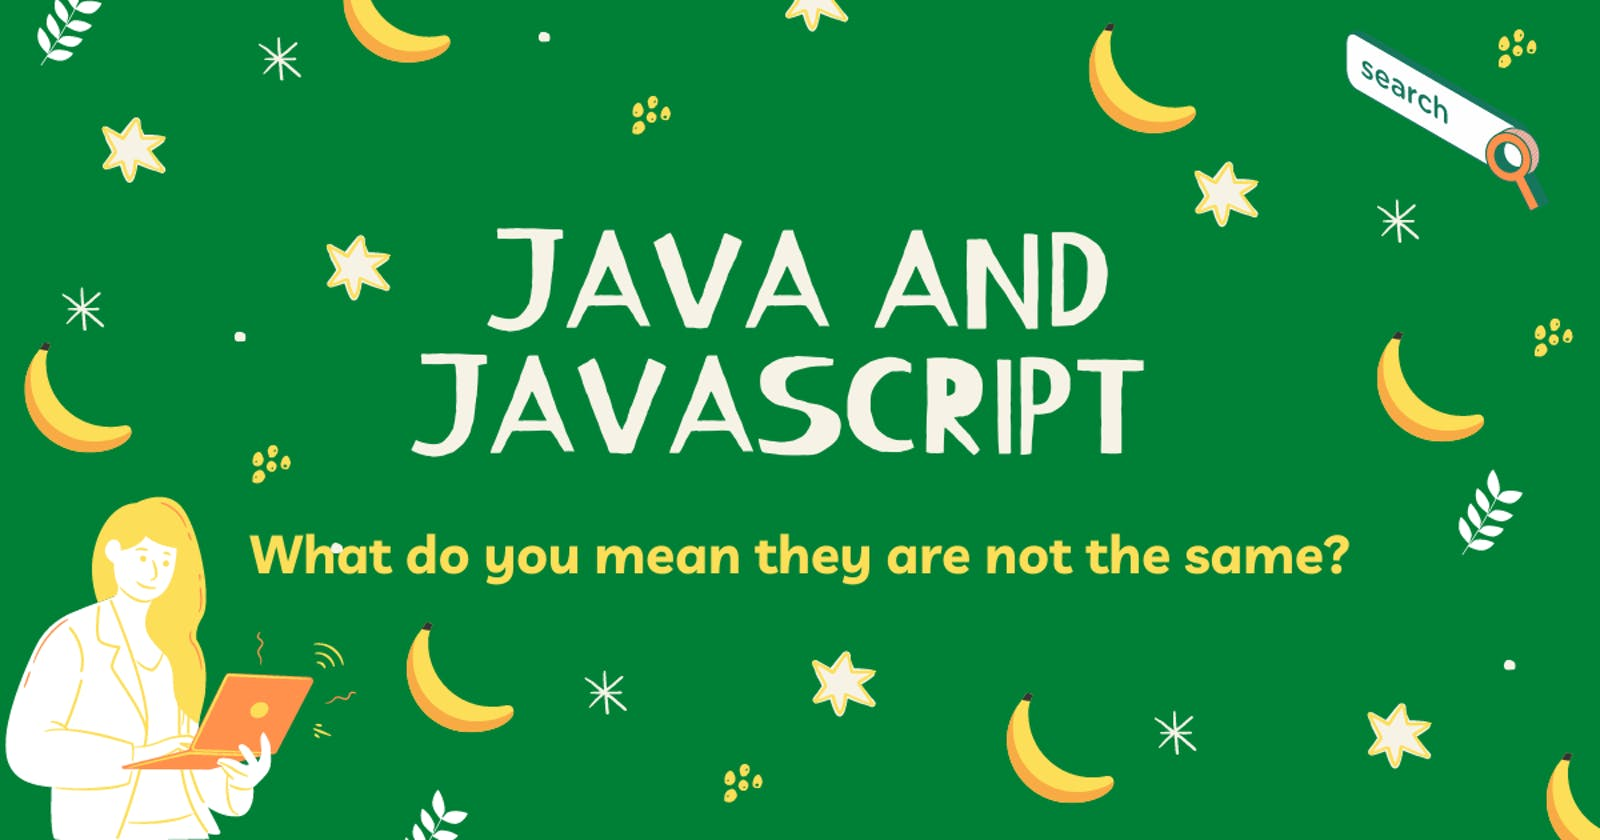 What do you mean Java and JavaScript aren't related?